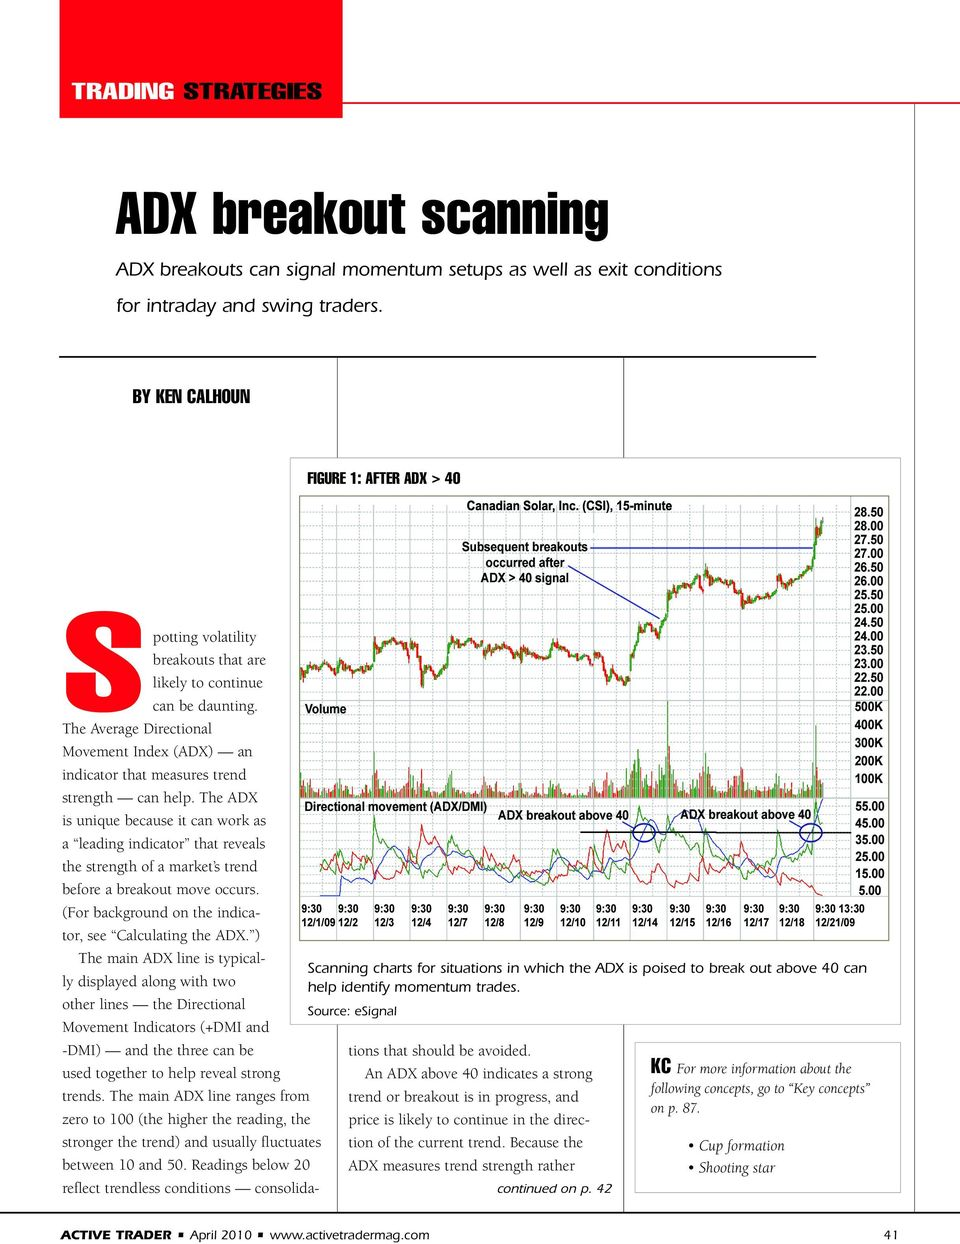 The Average Directional Movement Index (ADX) an indicator that measures trend strength can help.